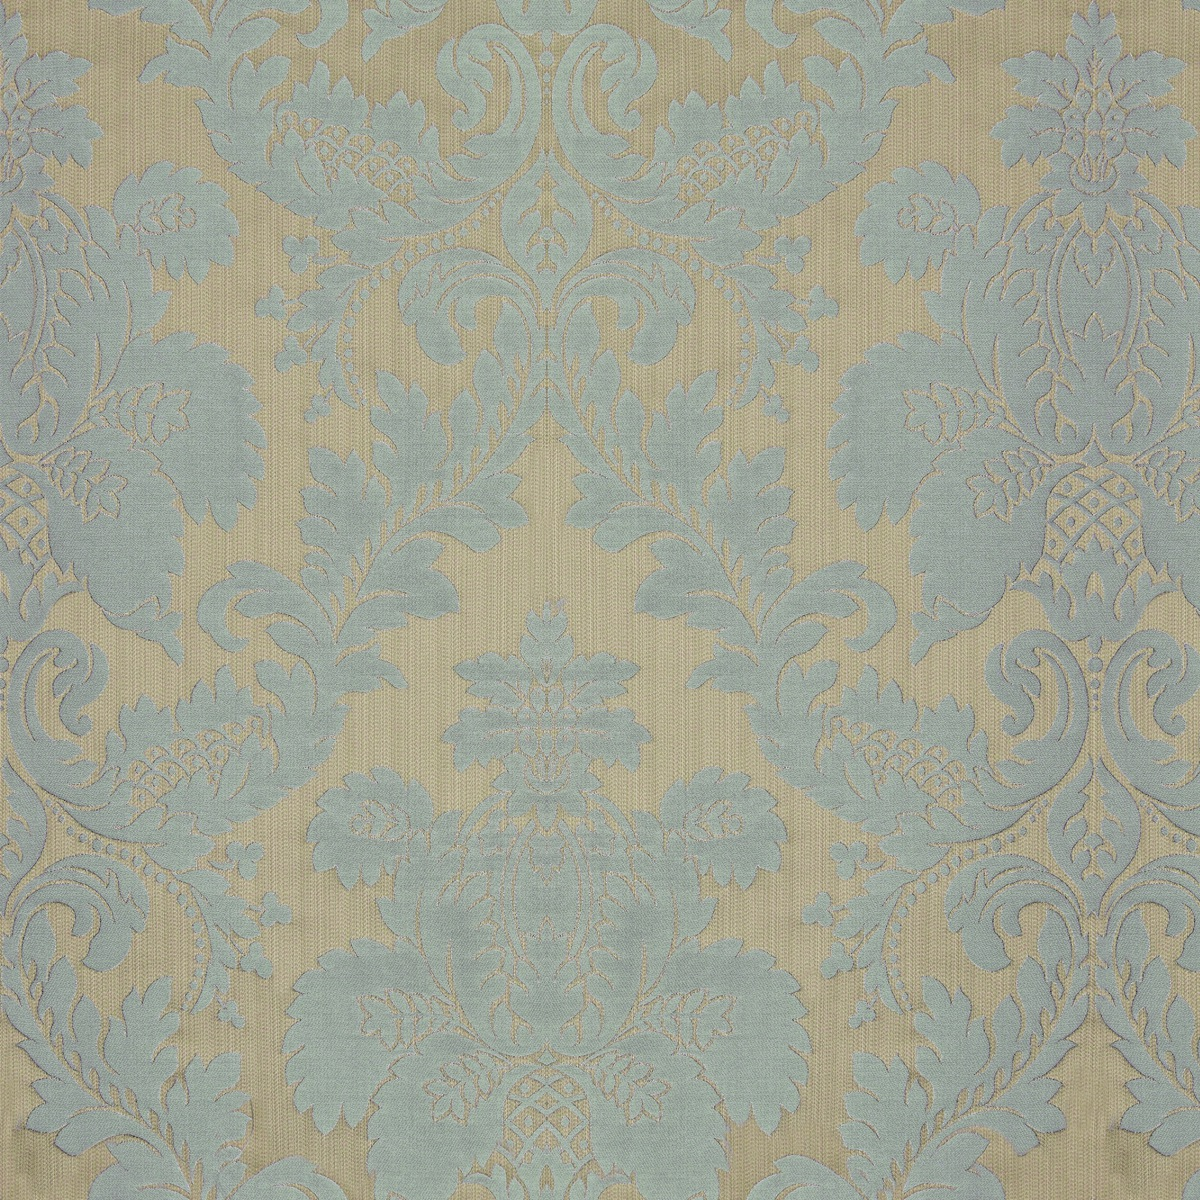 Vendome Damask – Aquamarine